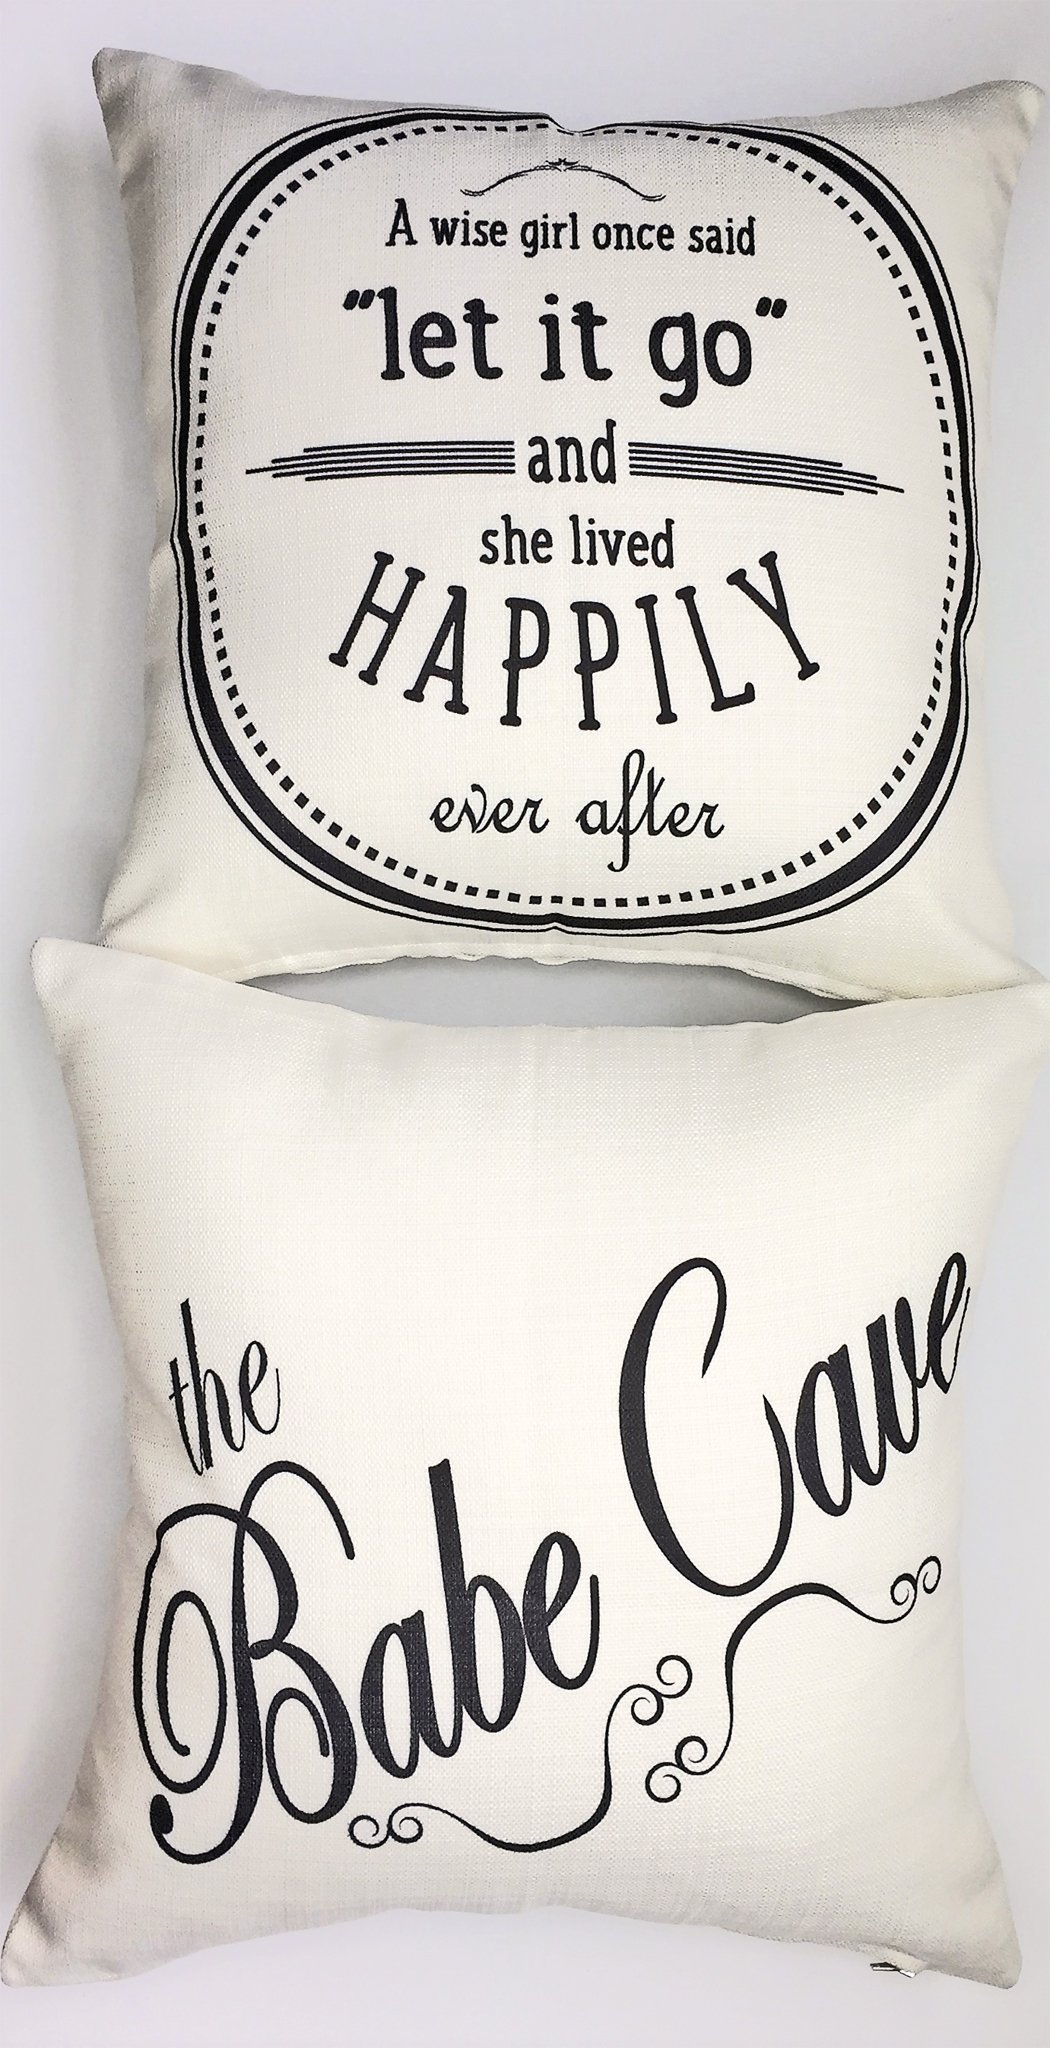 Babe cave-let it go funny ivory Throw Pillow-dorm pillow,teen girl pillow,teen girls room,girls sign,pillow for girls-dorm pillow,college girl gift-dorm decor,motivational pillow